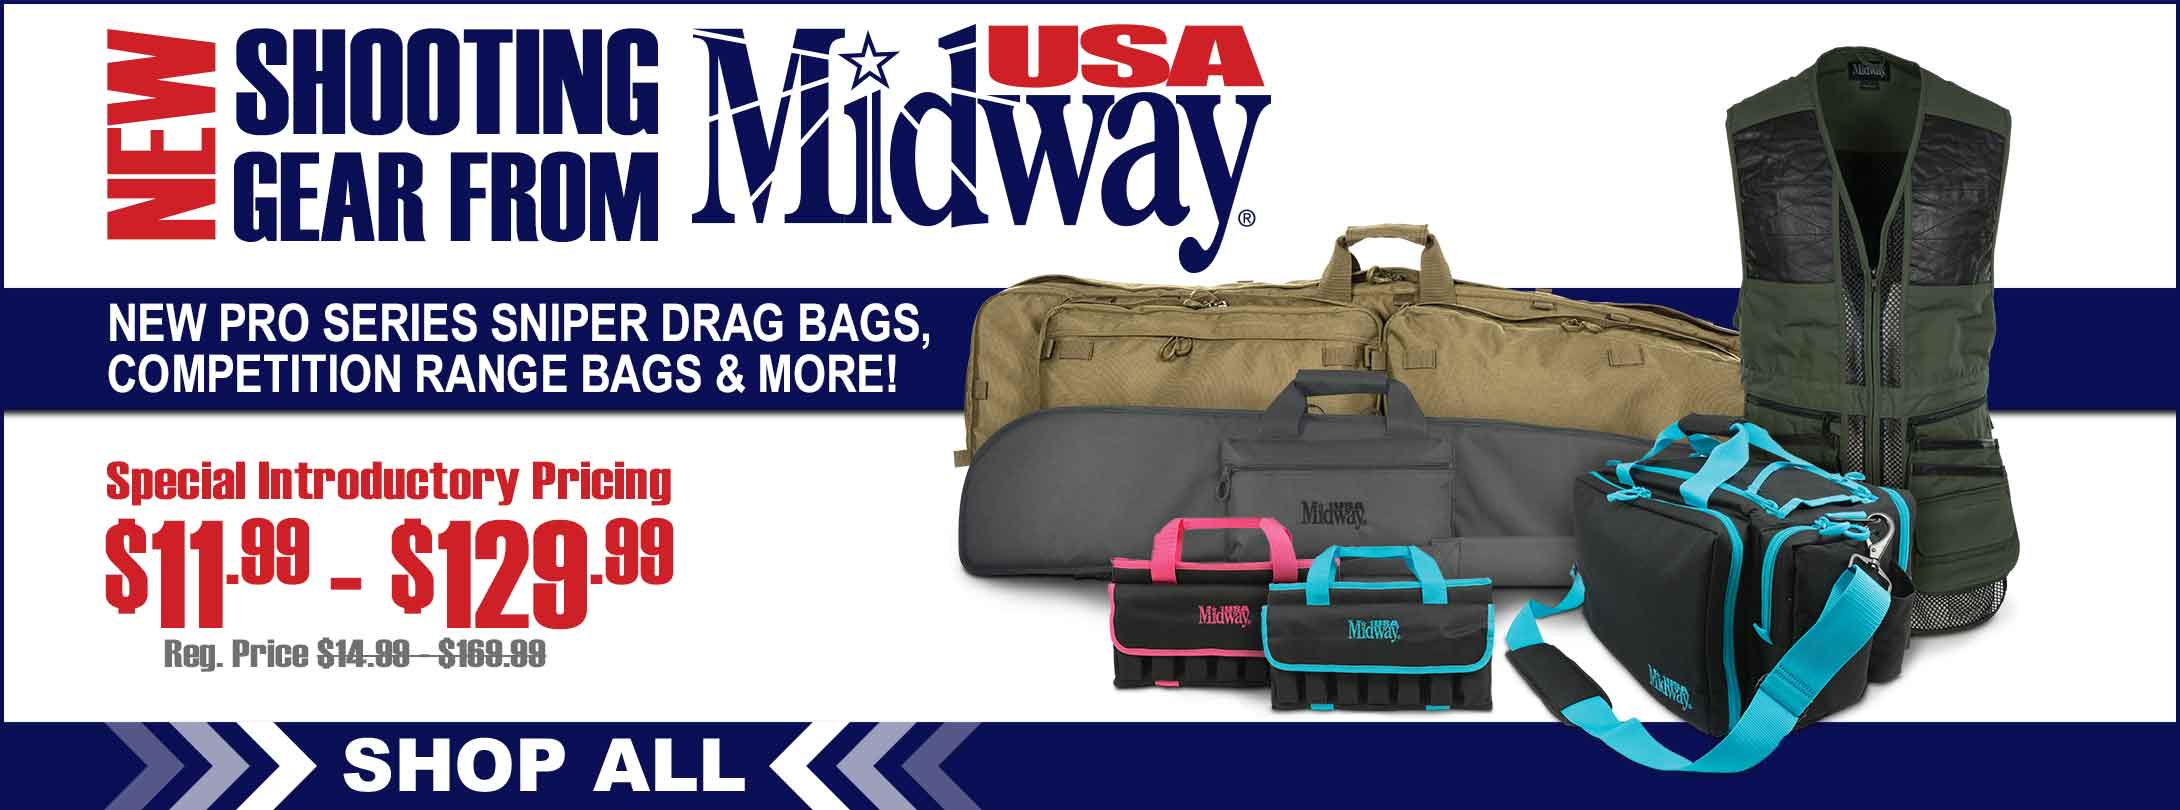 New Gear for the Range from MidwayUSA!